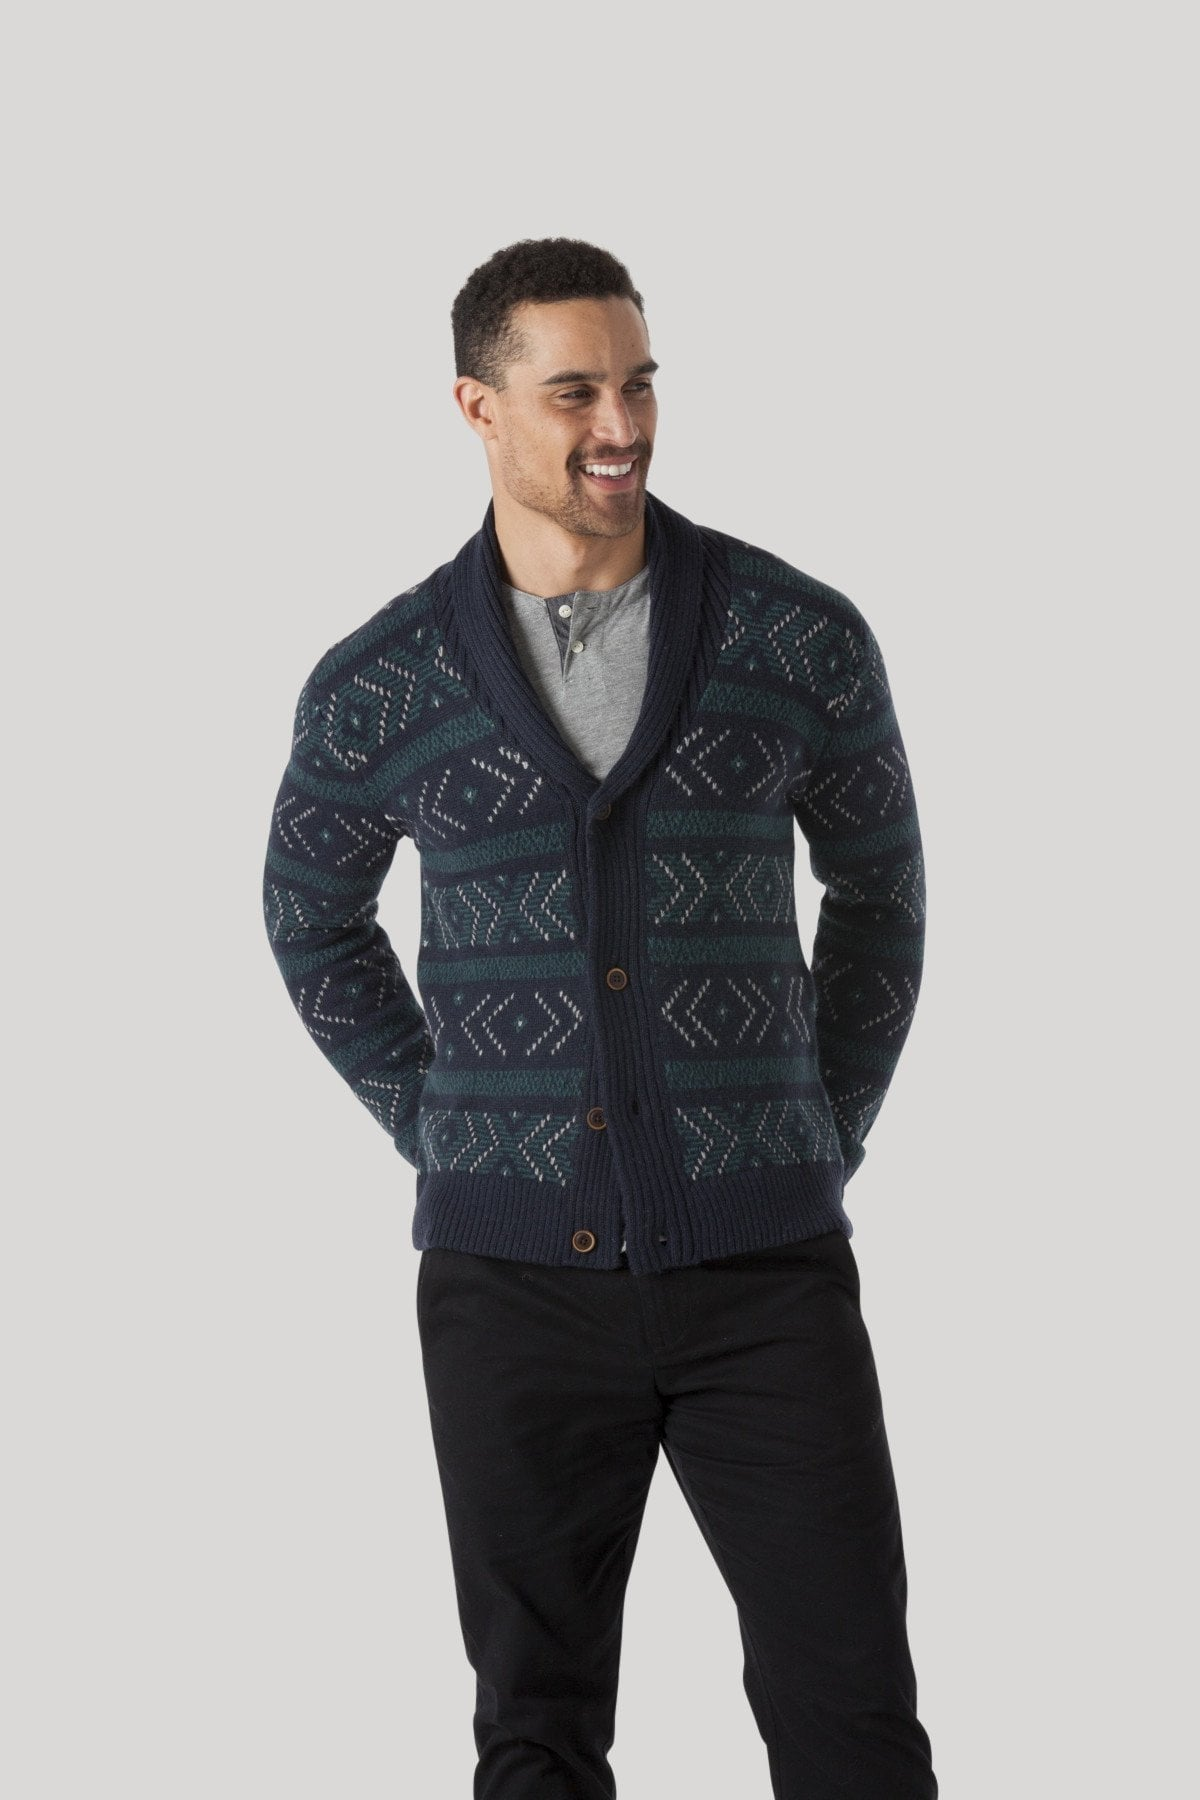 Native Cardigan - NYPD Blue